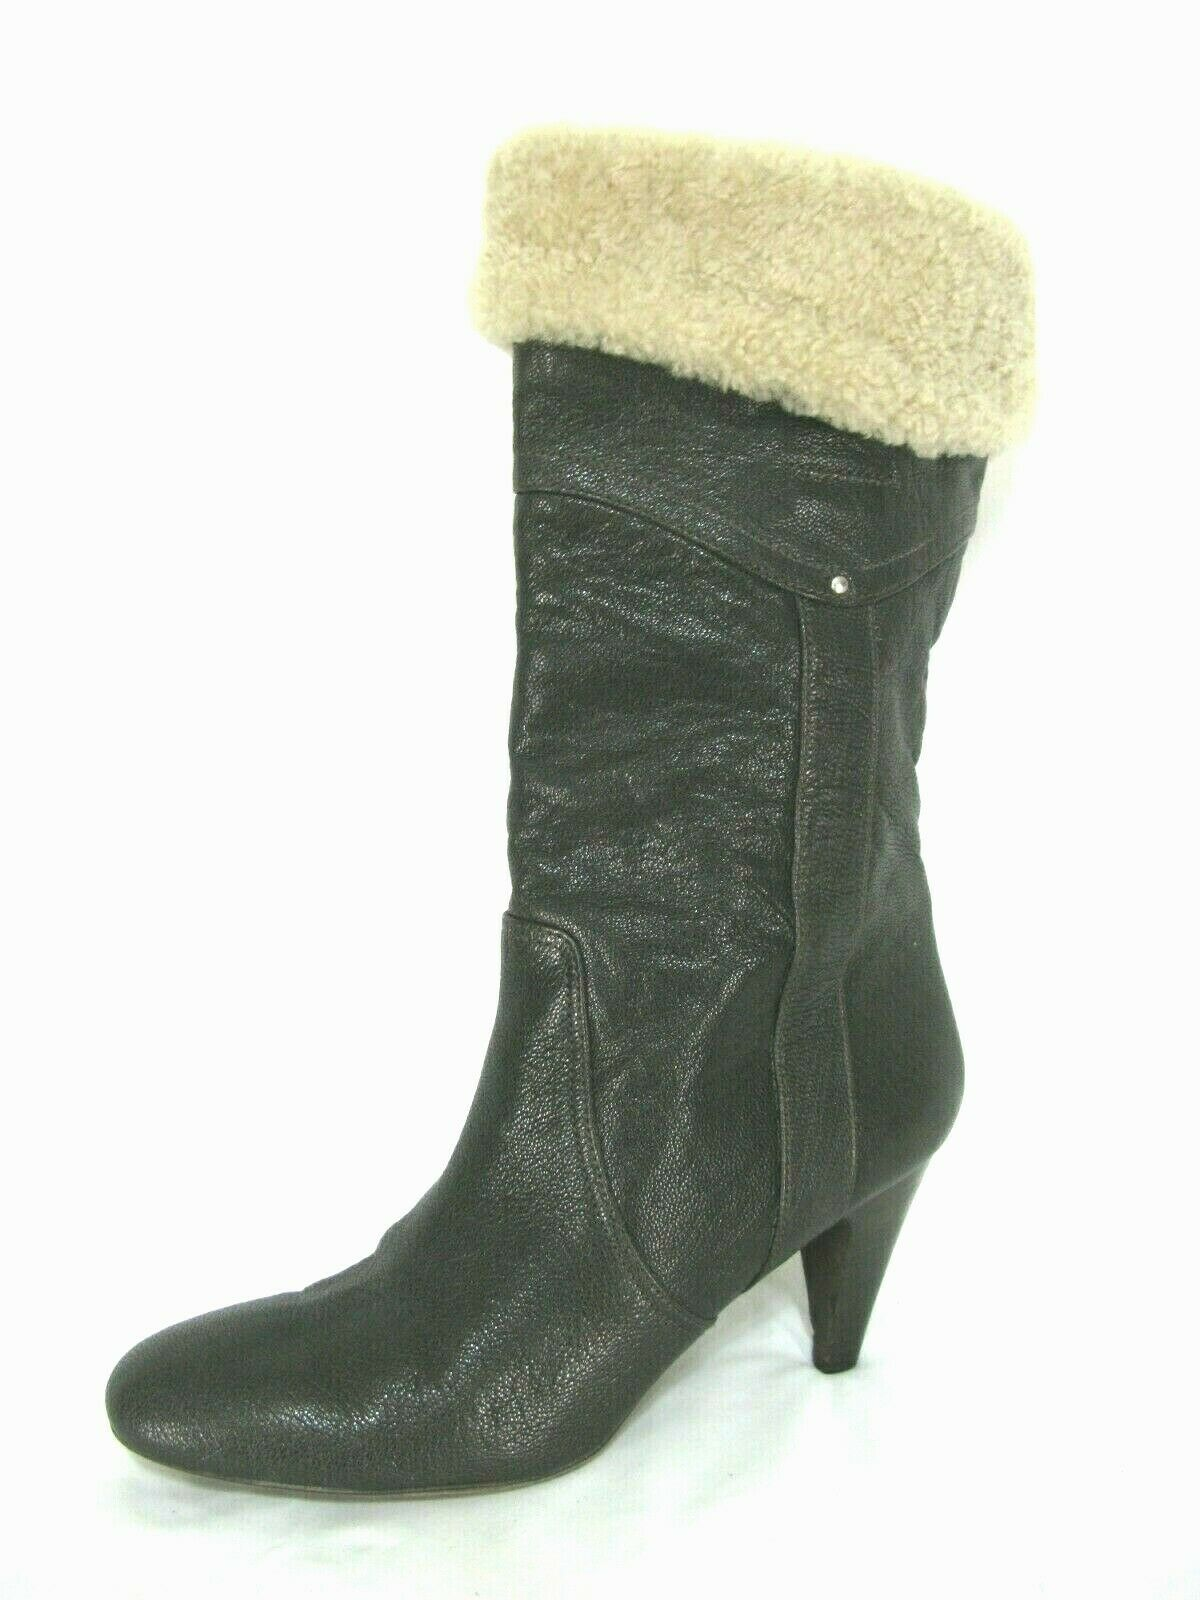 DKNY Insolio Boots  Sz 10 Brown Leather Heels Mid Calf Fur Cuff Foldover